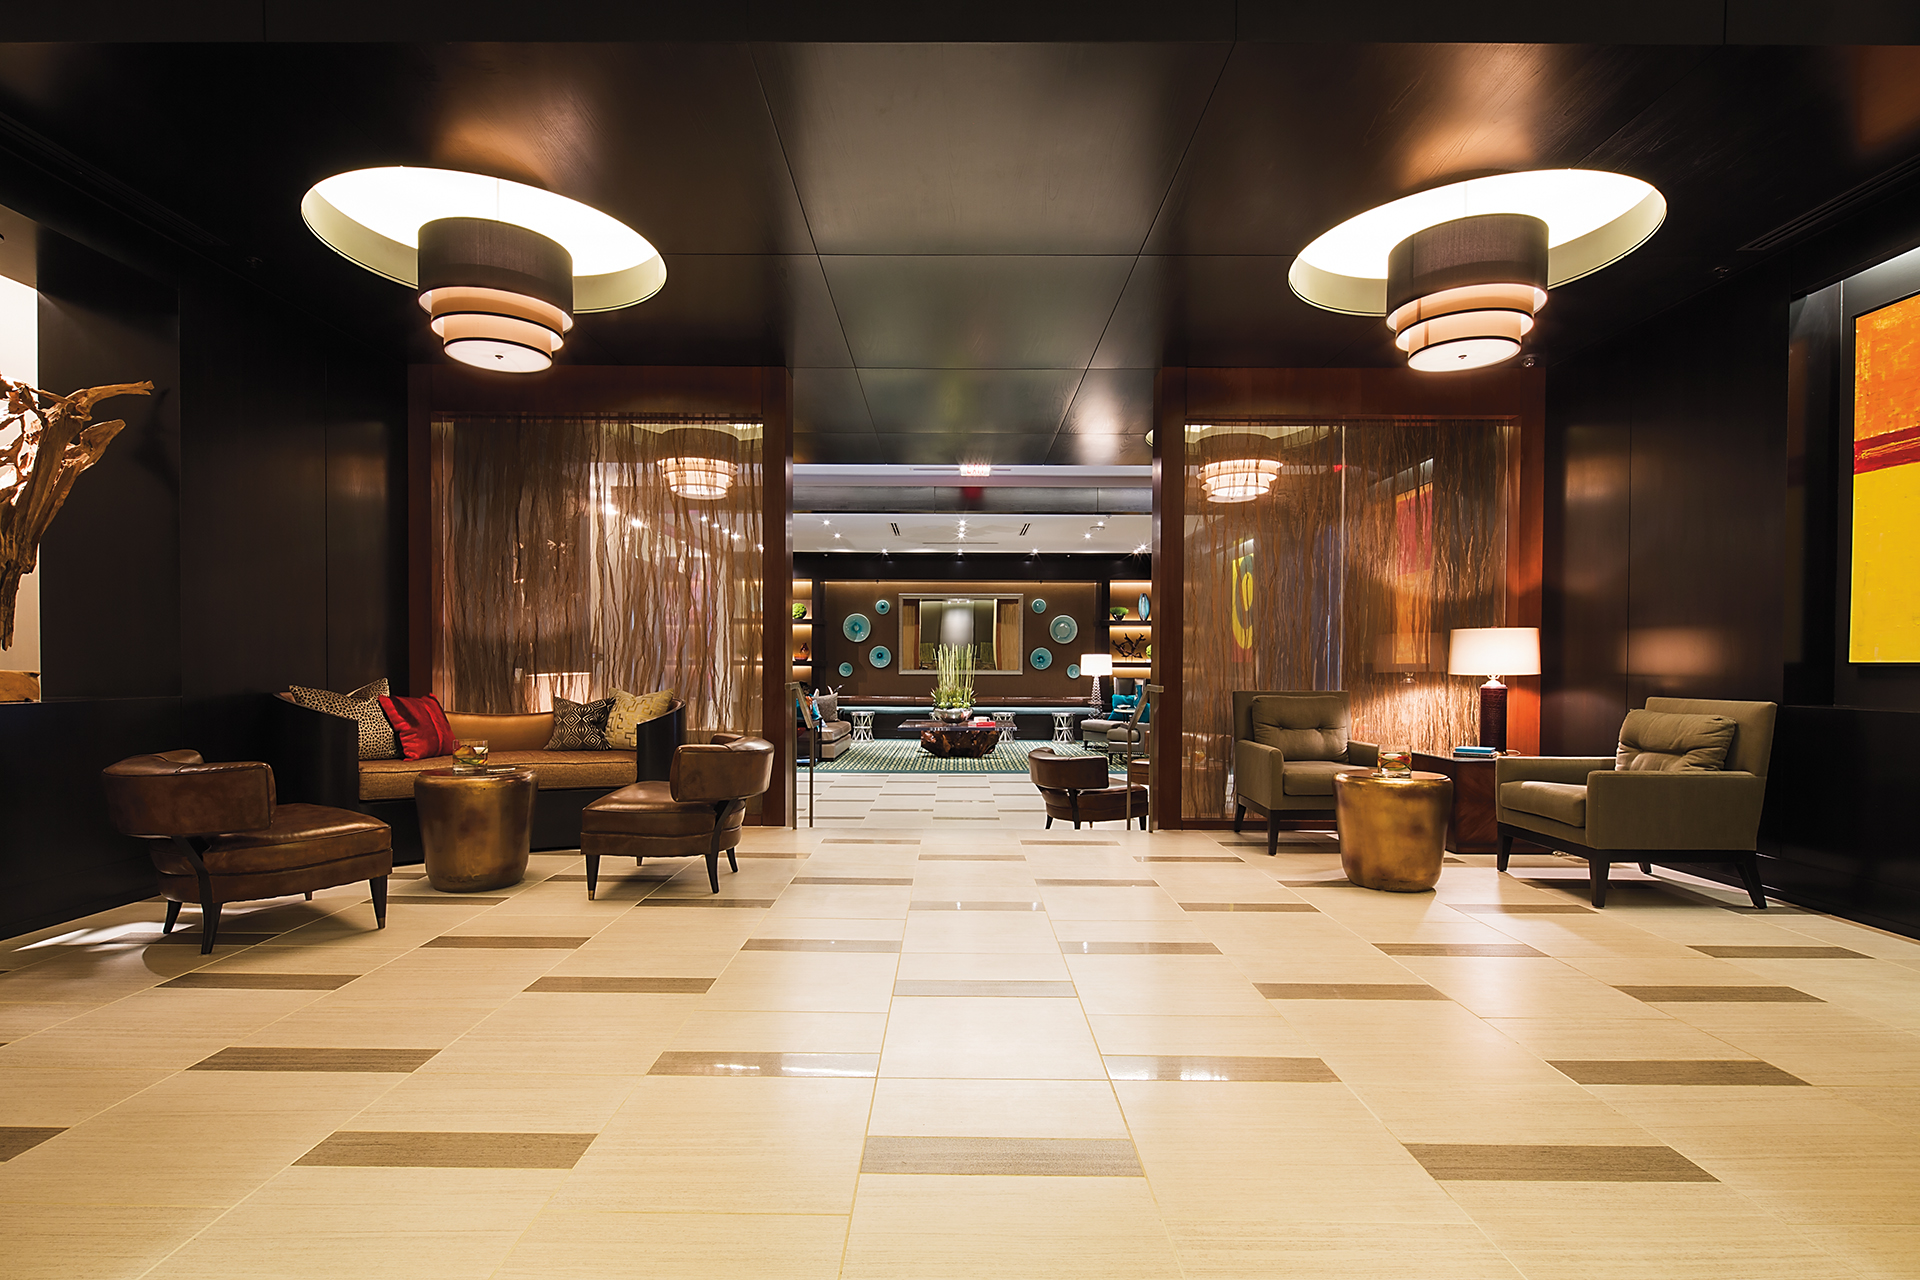 The Continental Lobby